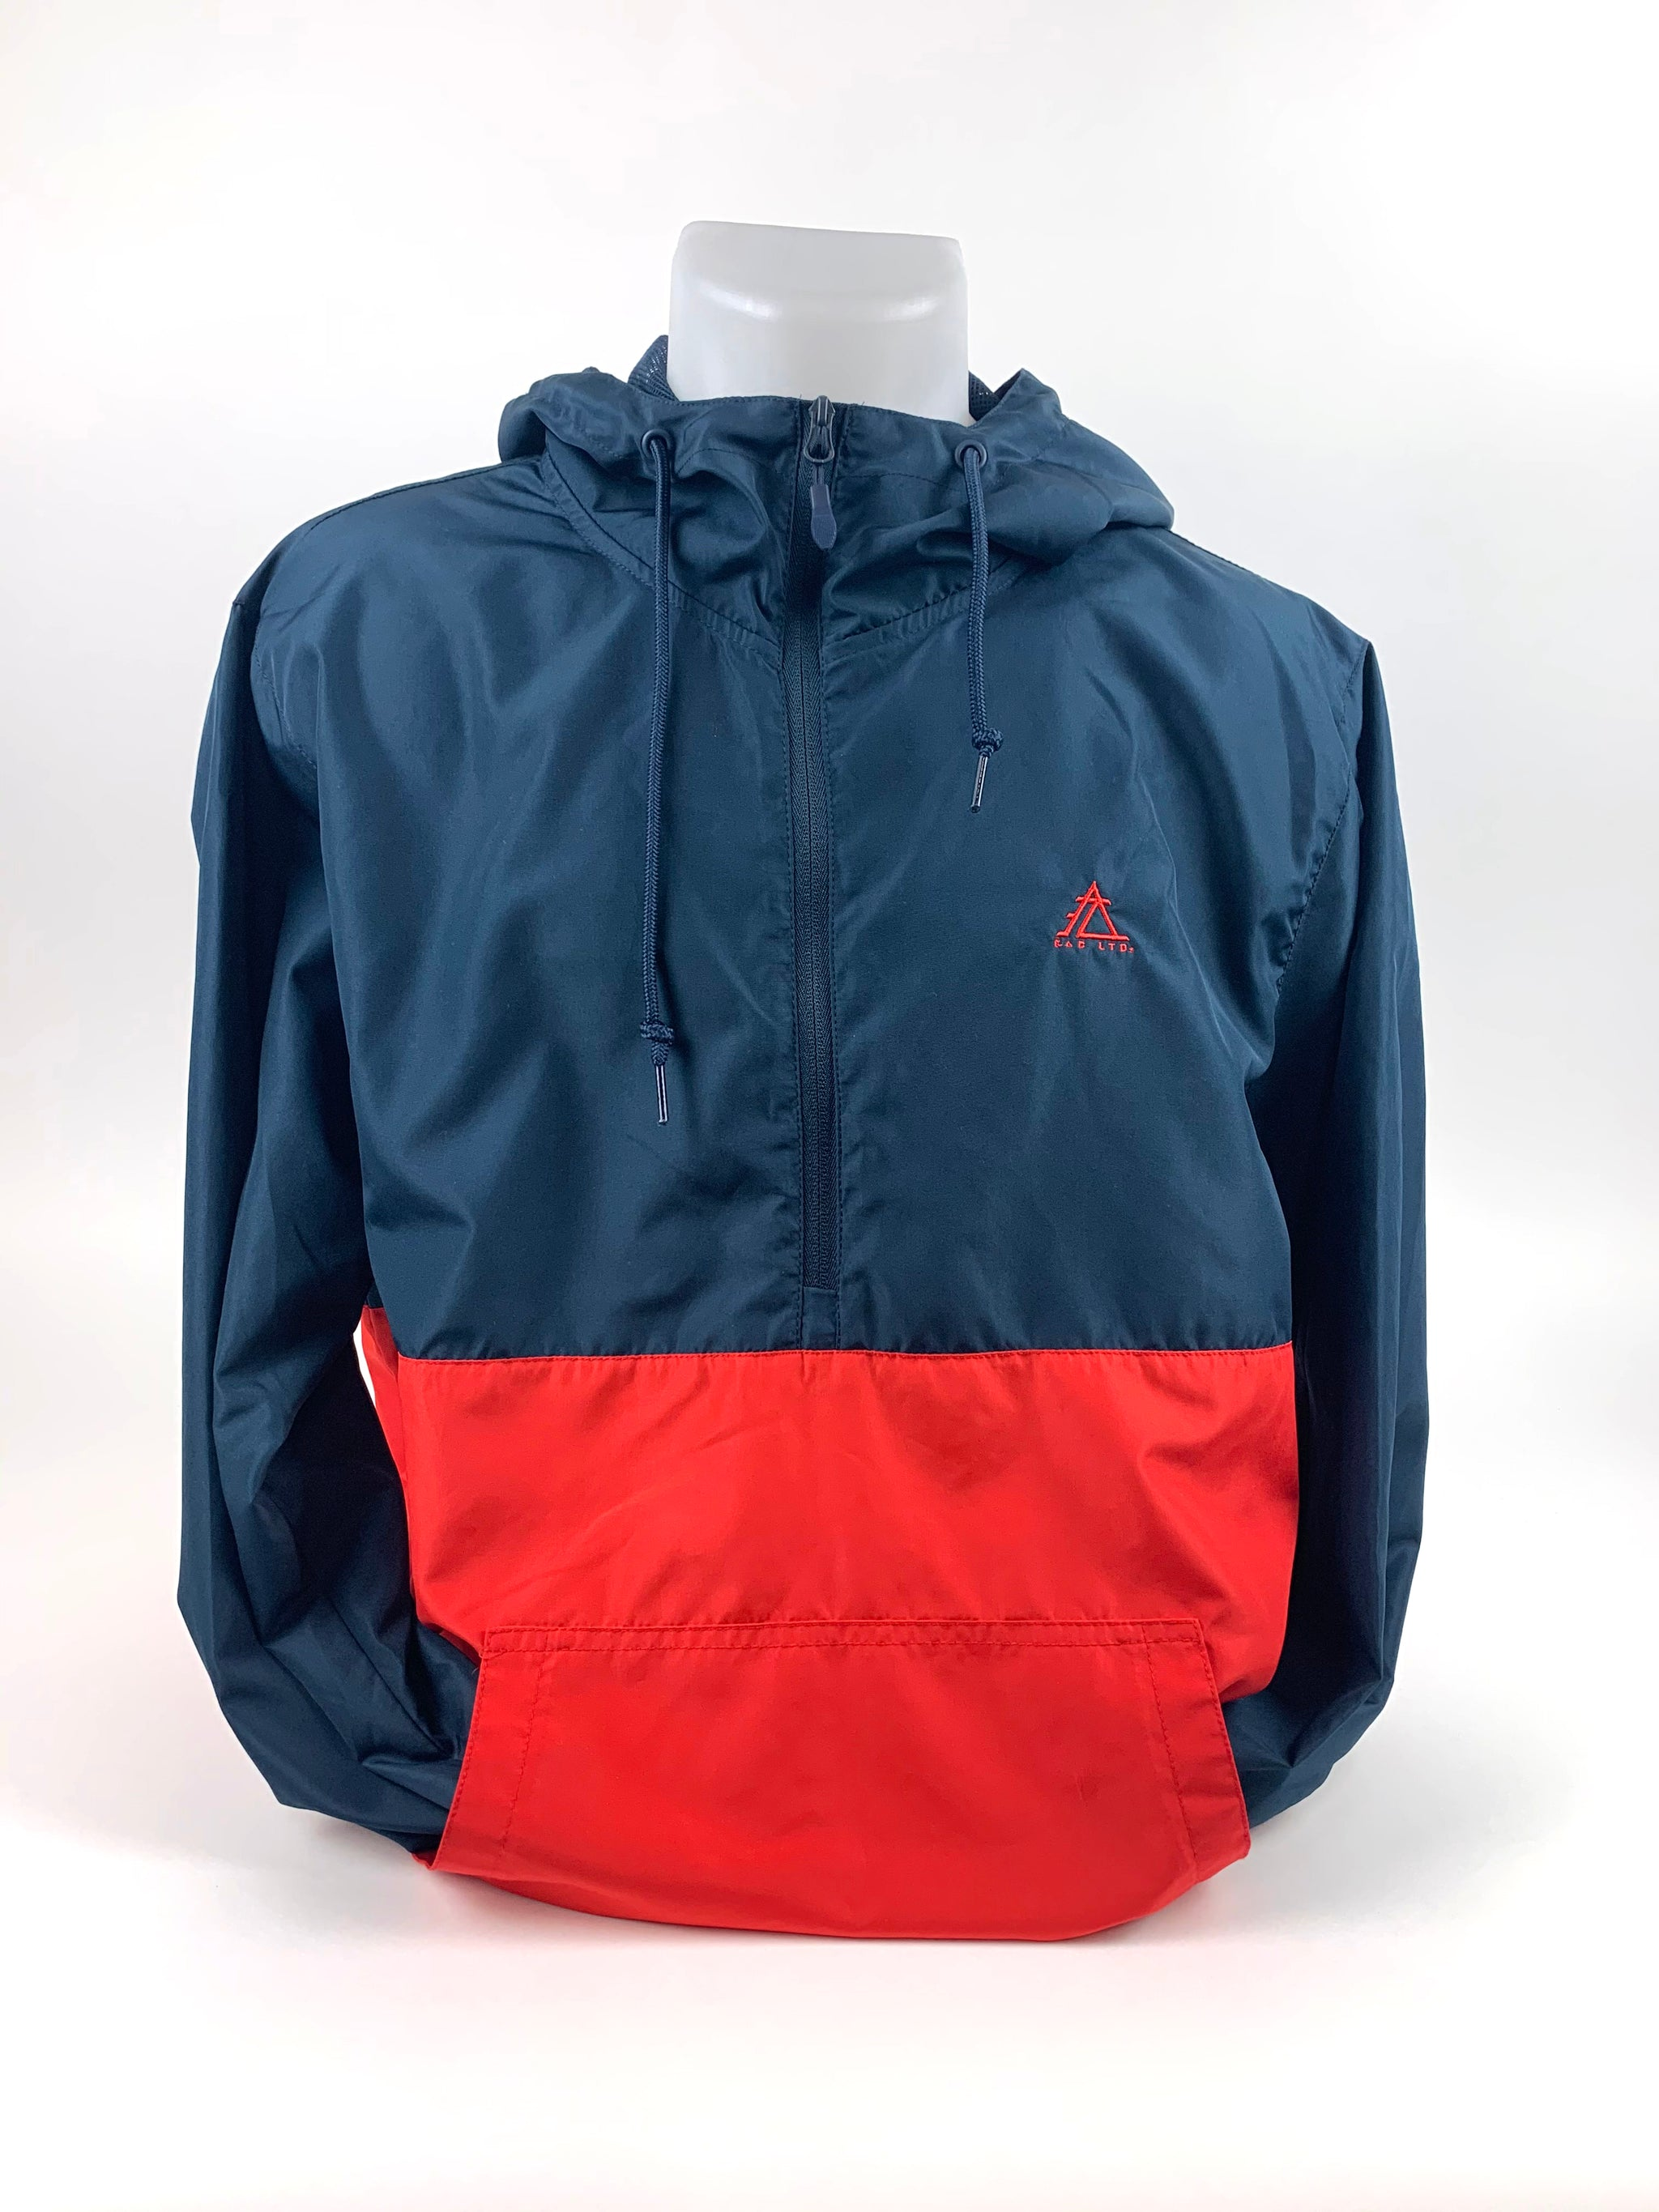 The OG Windbreaker | EAC LTD.